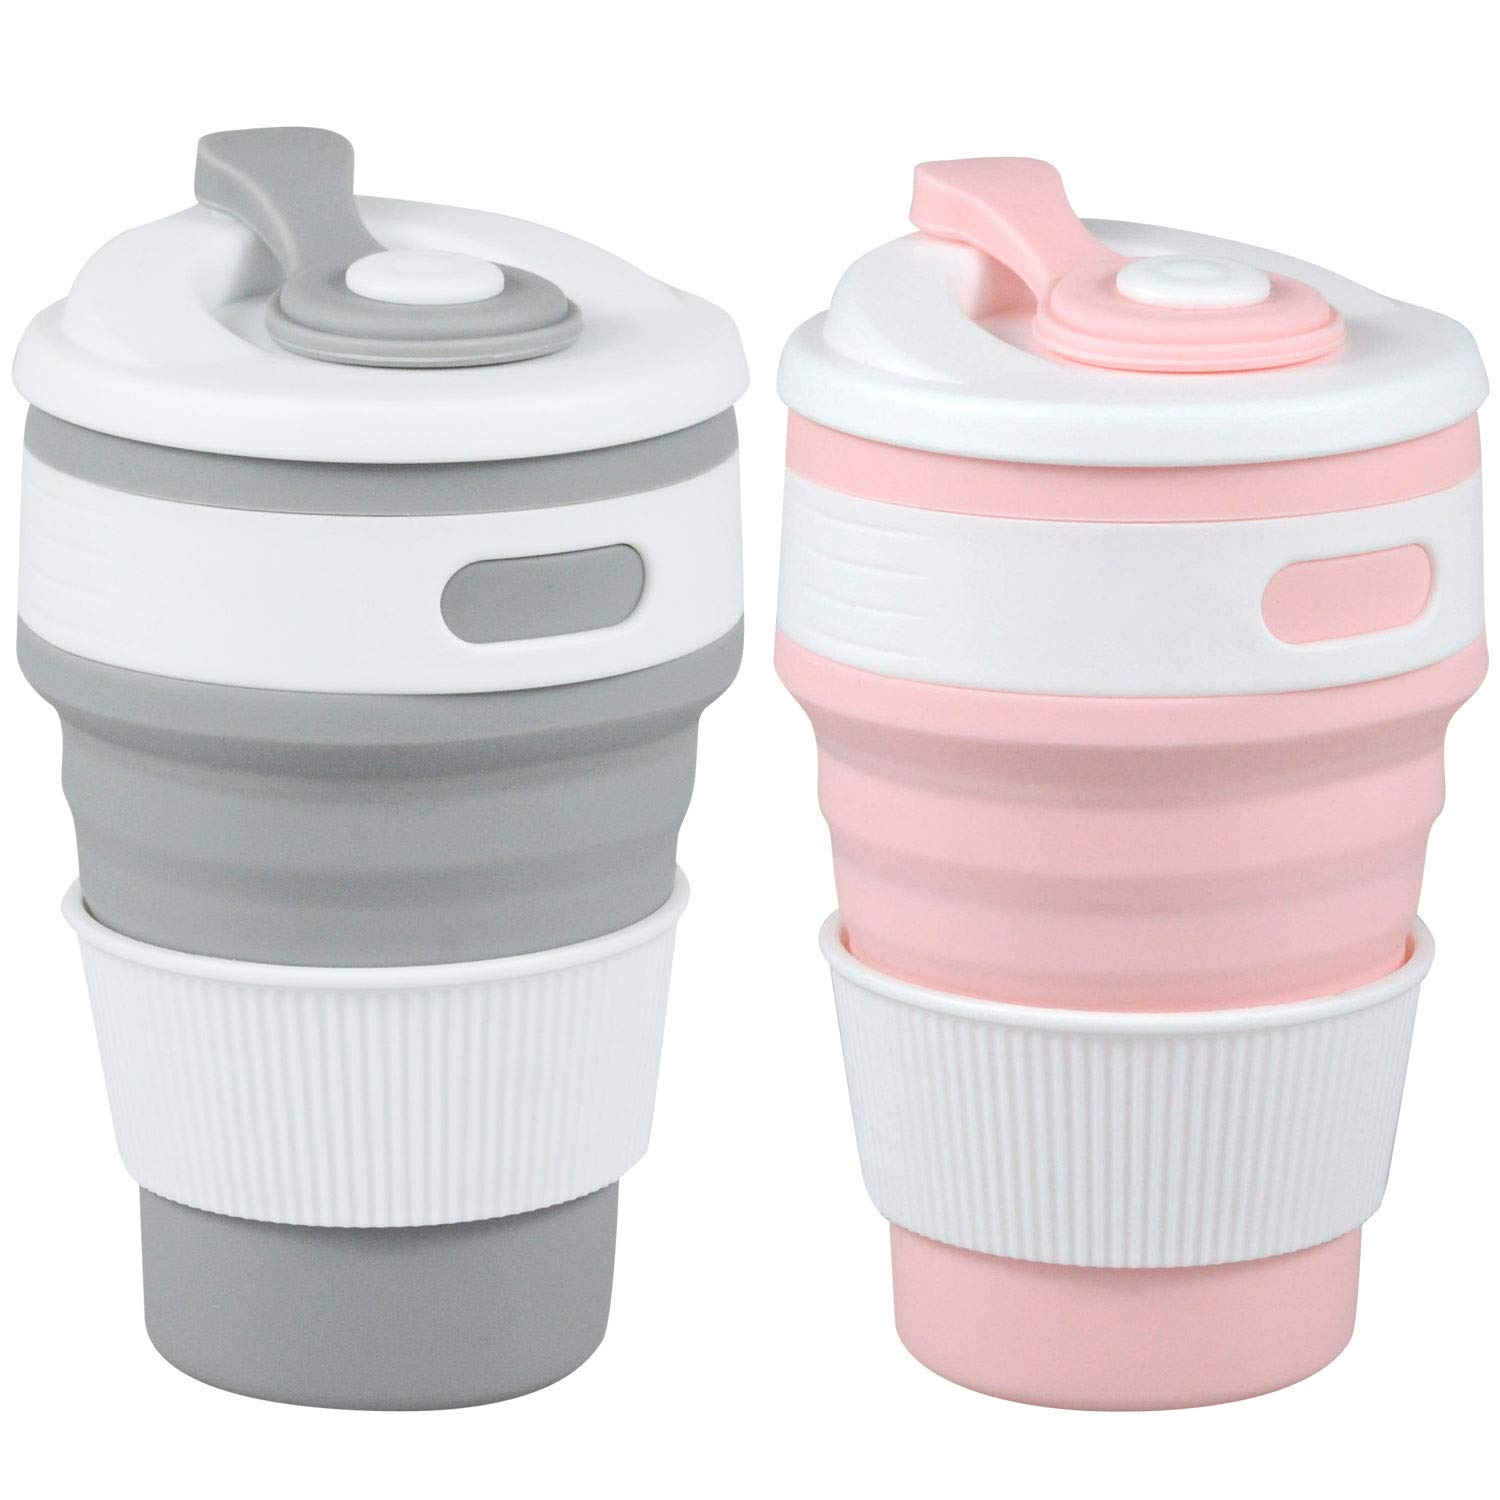 Jazz Pose Collapsible Coffee Cup Folding Cup Food Grade Silicone Cup, Portable Cup Reusable Cups, Foldable Cup, Leak Proof, BPA Free,Durability